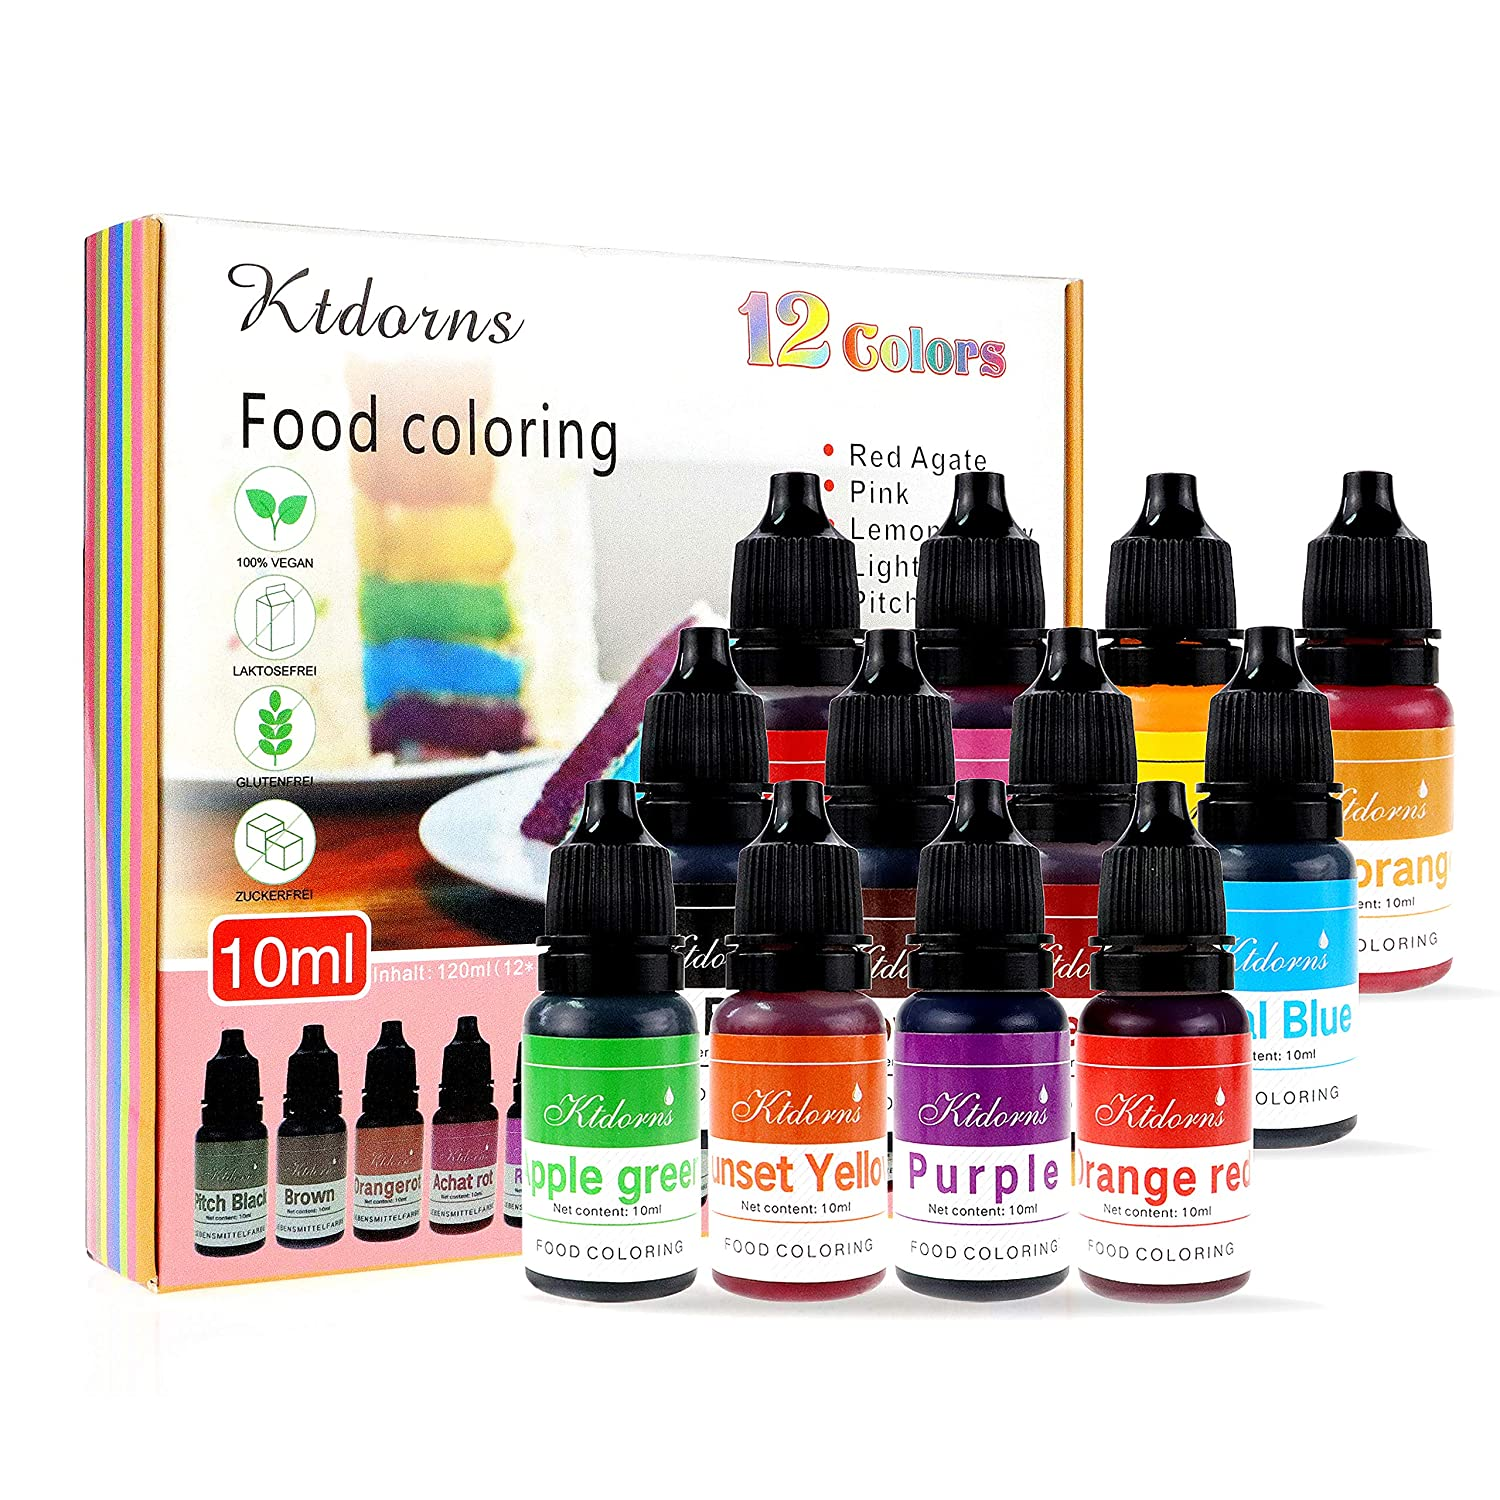 Food Coloring - 12 Color cake food coloring liquid Variety Kit for Baking, Decorating,Fondant and Cooking, Slime Making Supplies Kit - .38 fl. oz. (10ml) Bottles